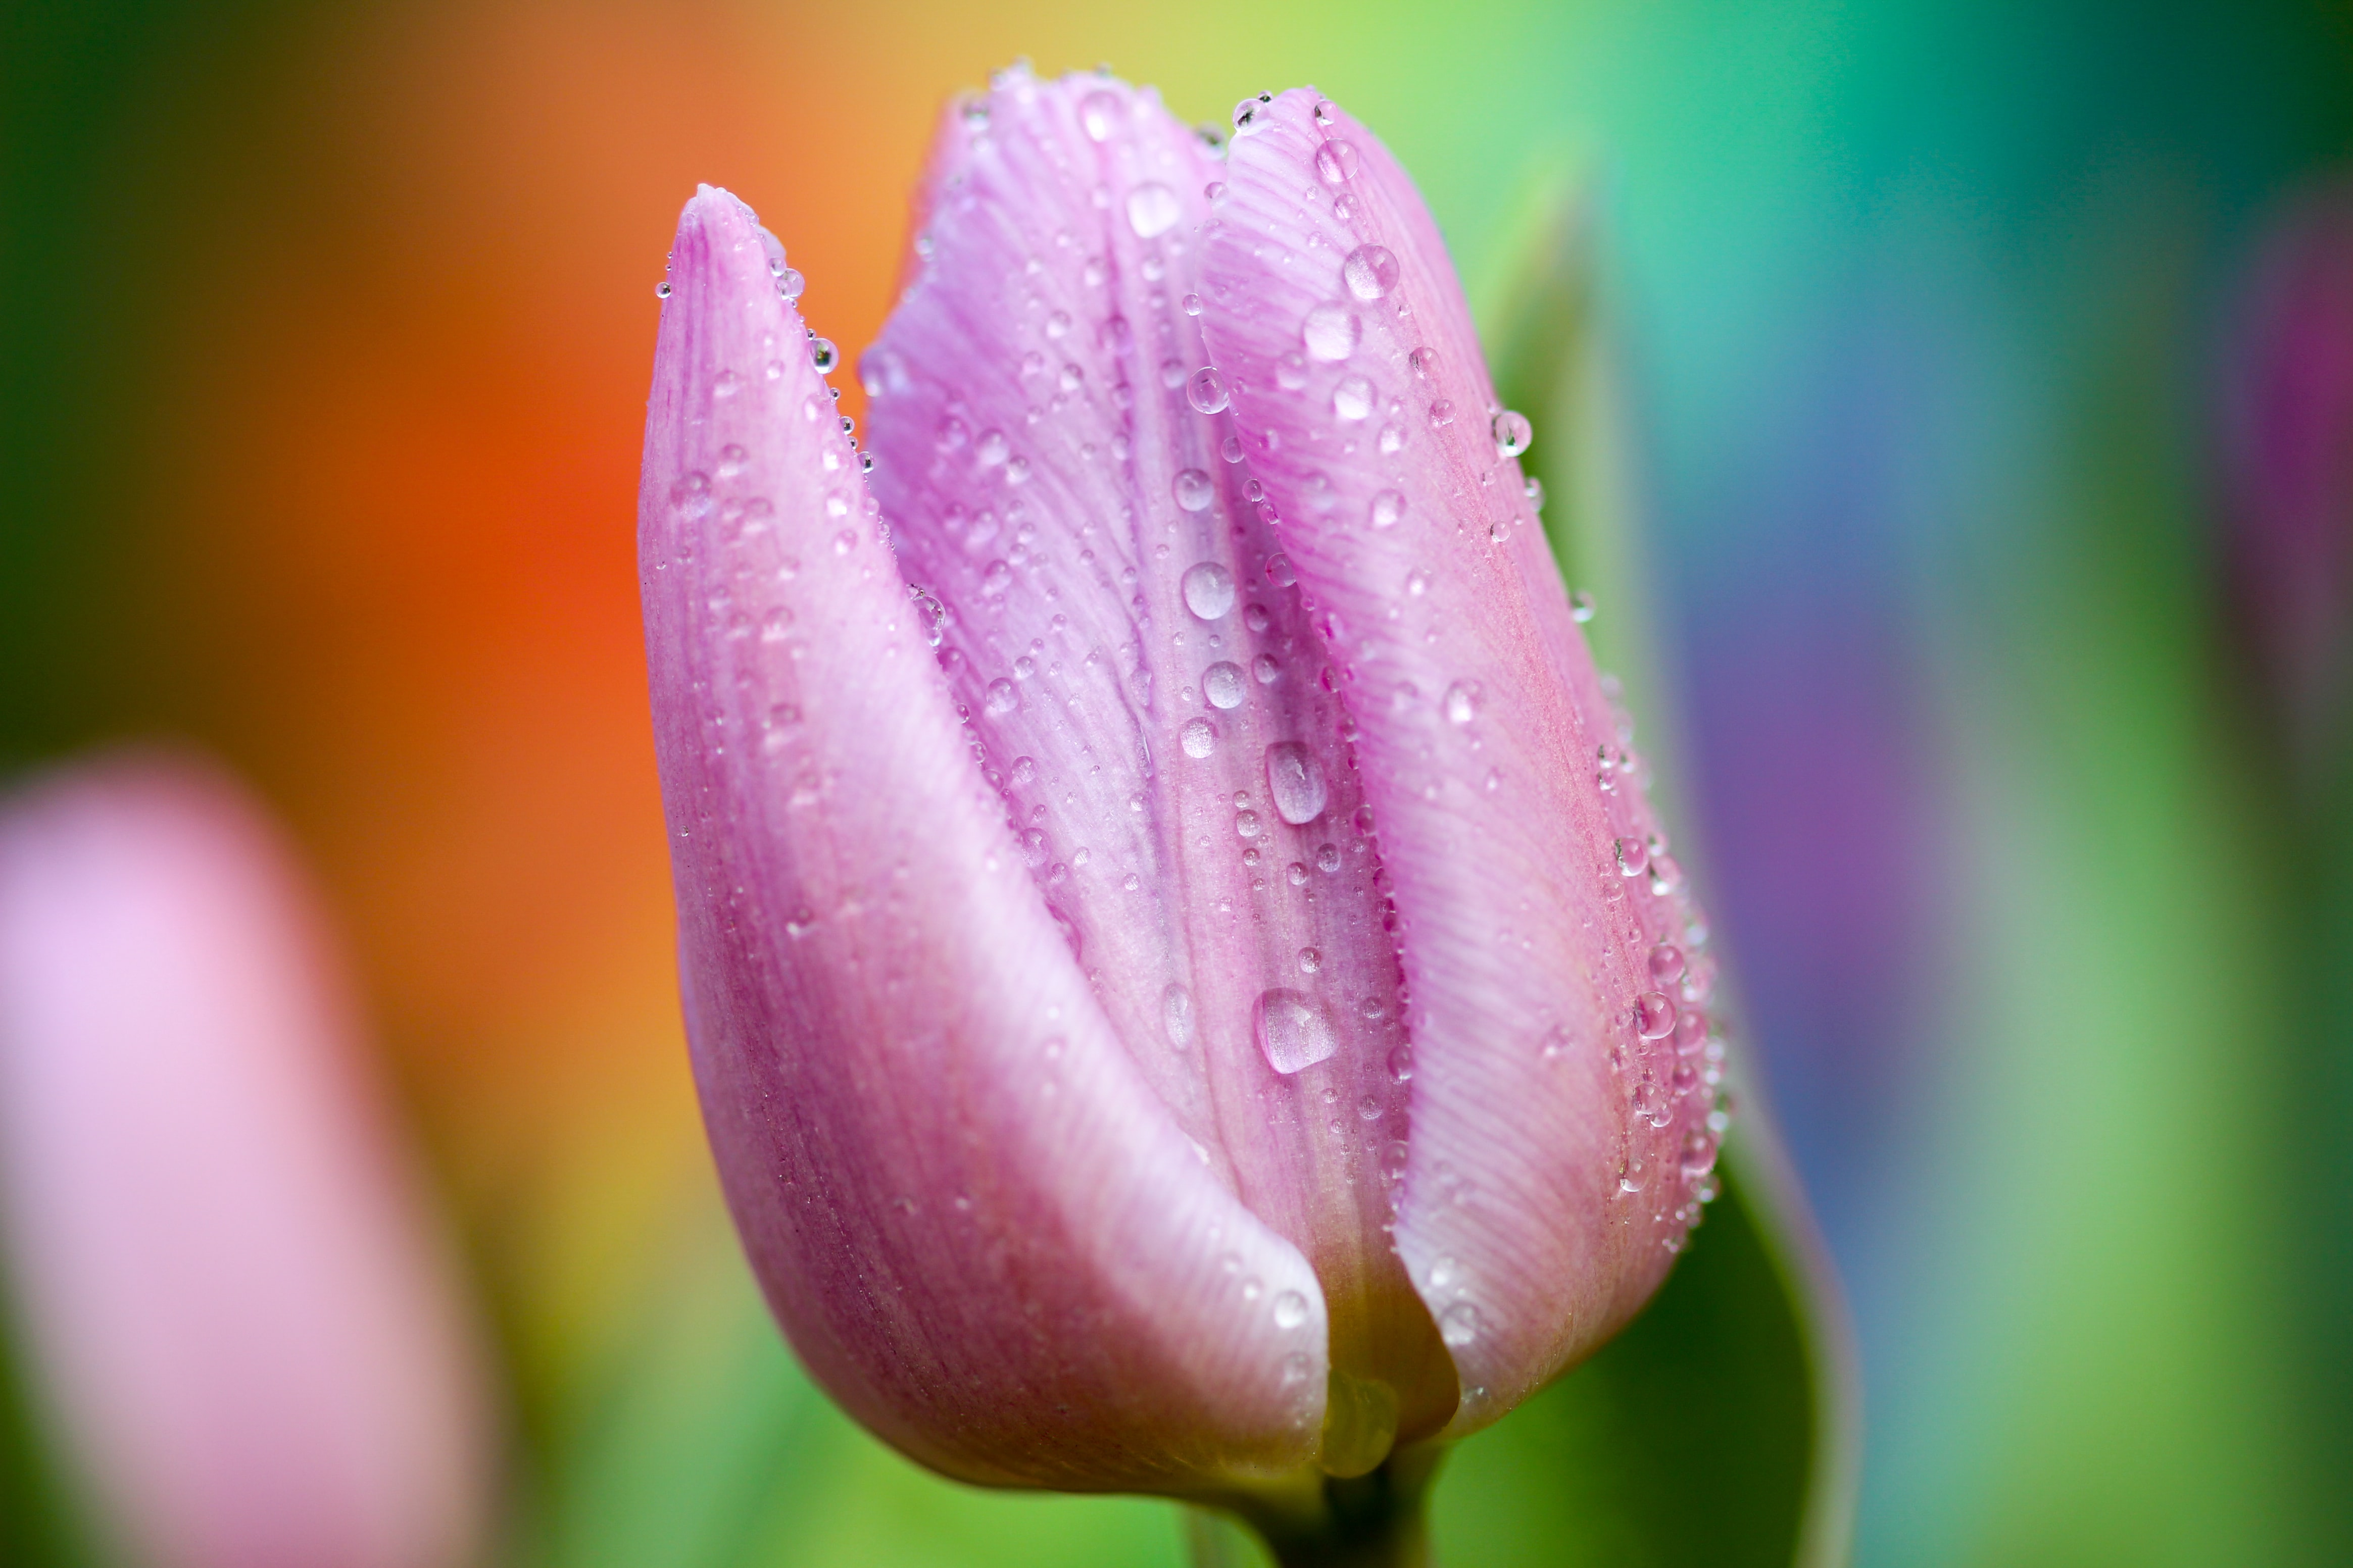 Close-up of a pink tulip with water droplets on its petals